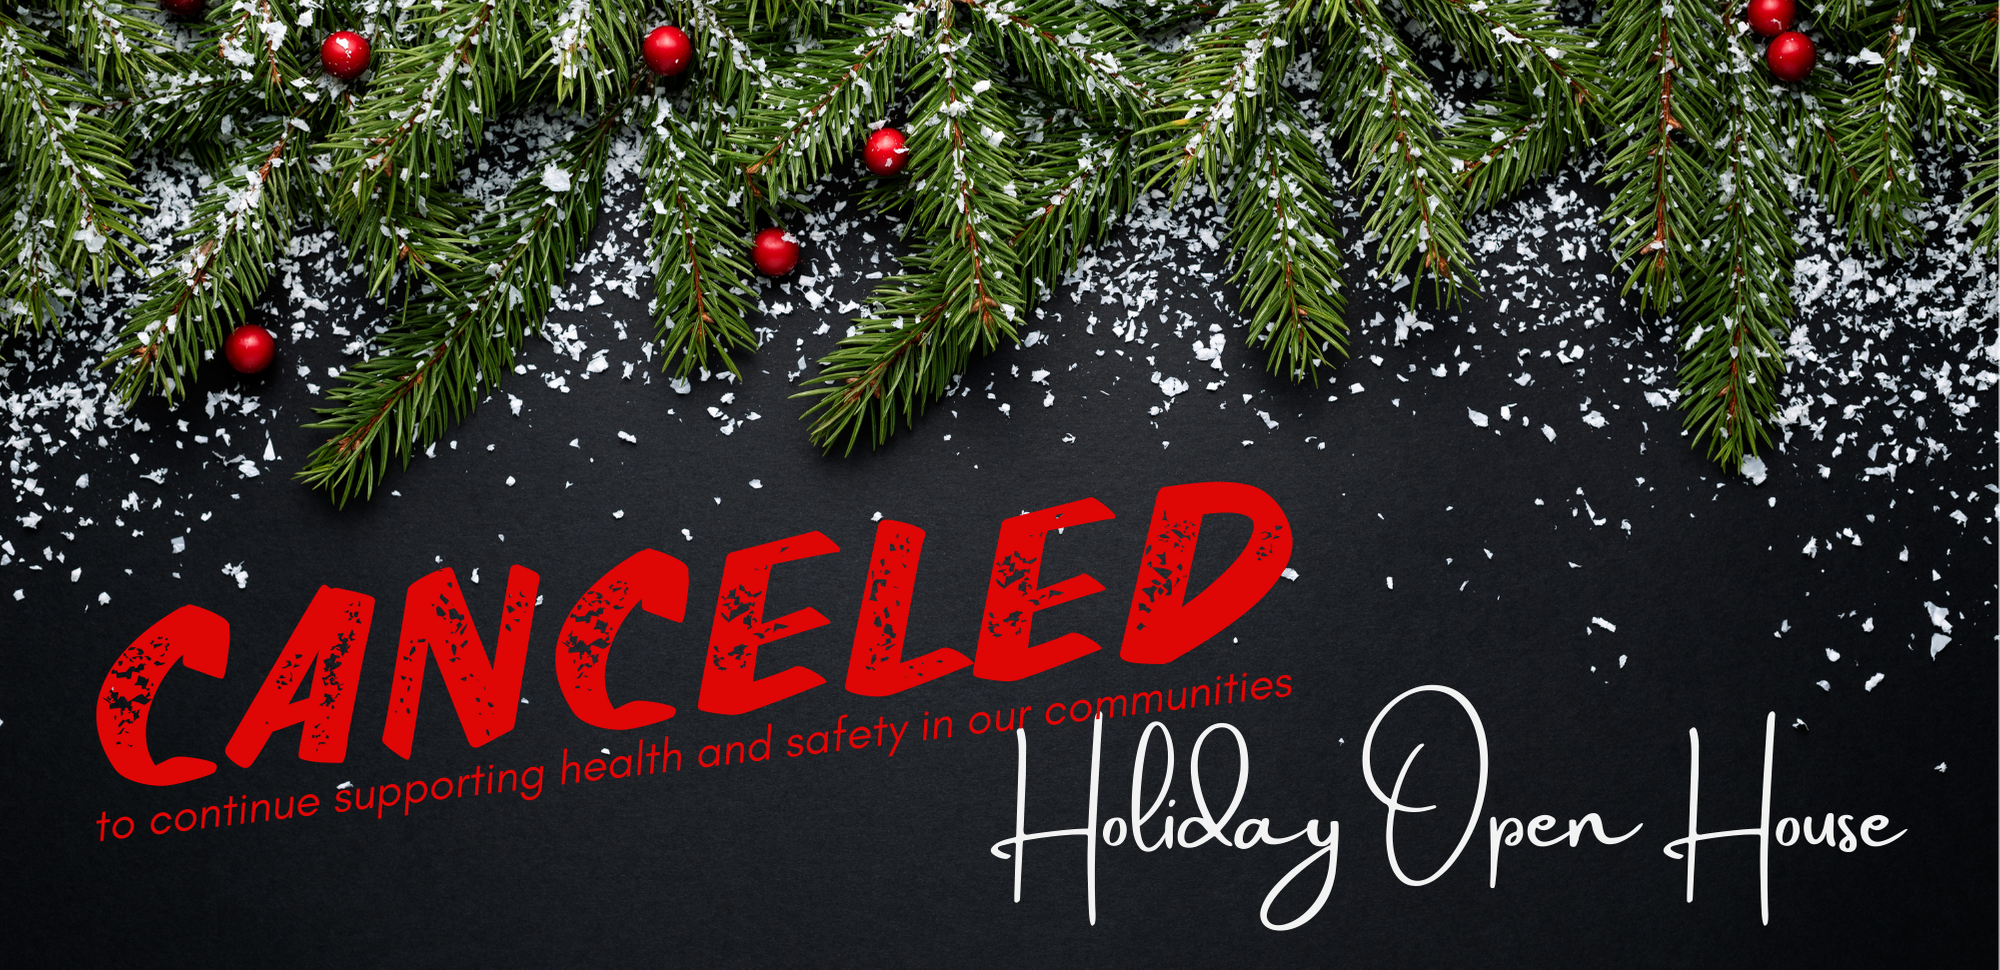 Holiday Open House canceled